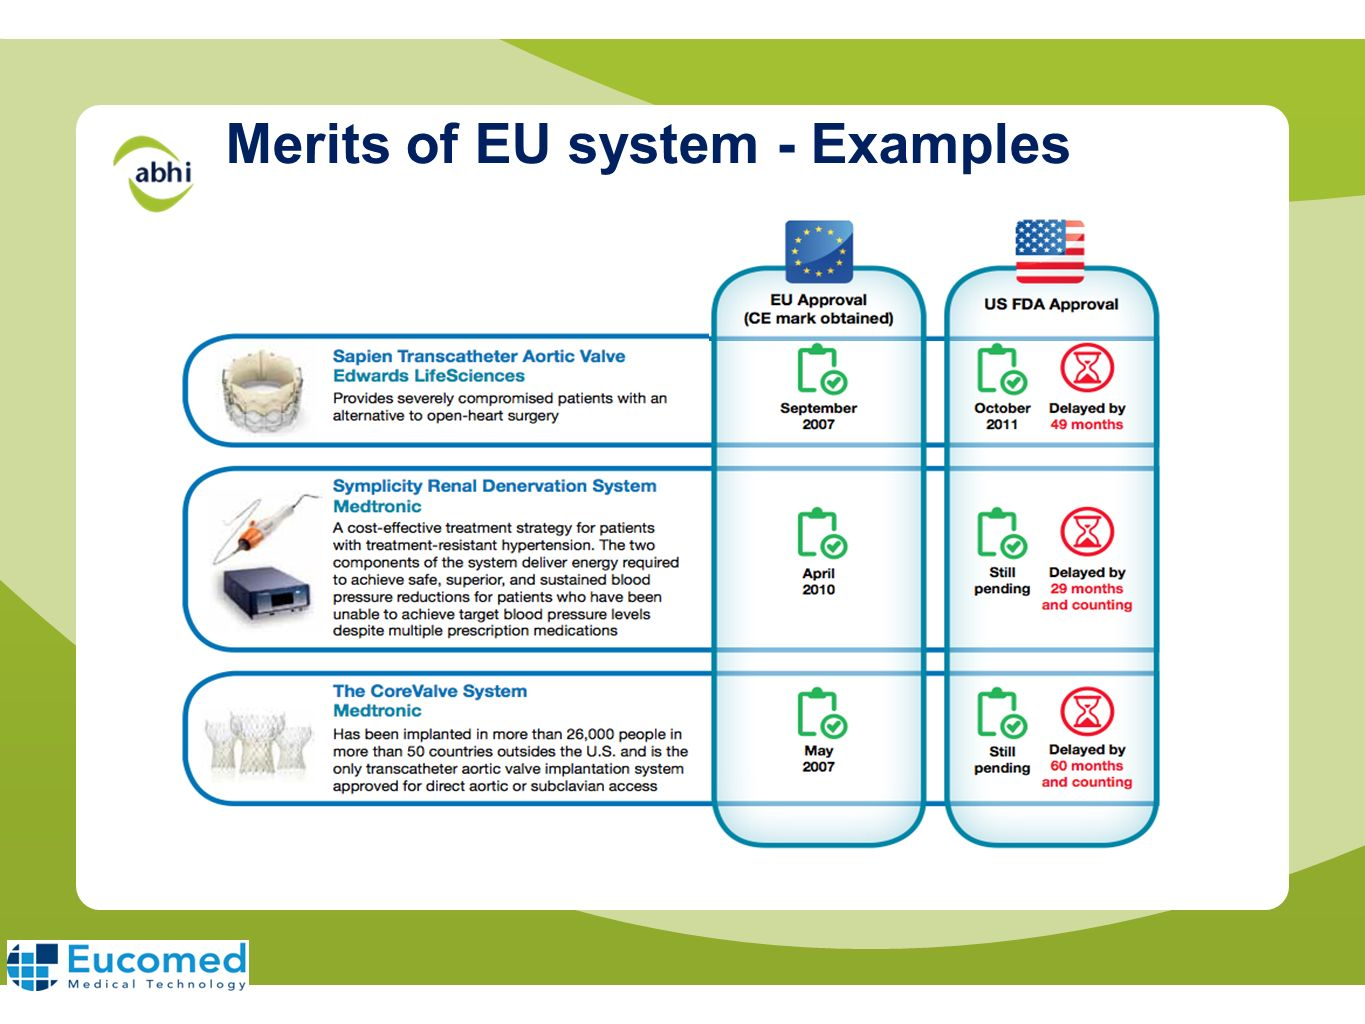 Merits of EU system - Examples